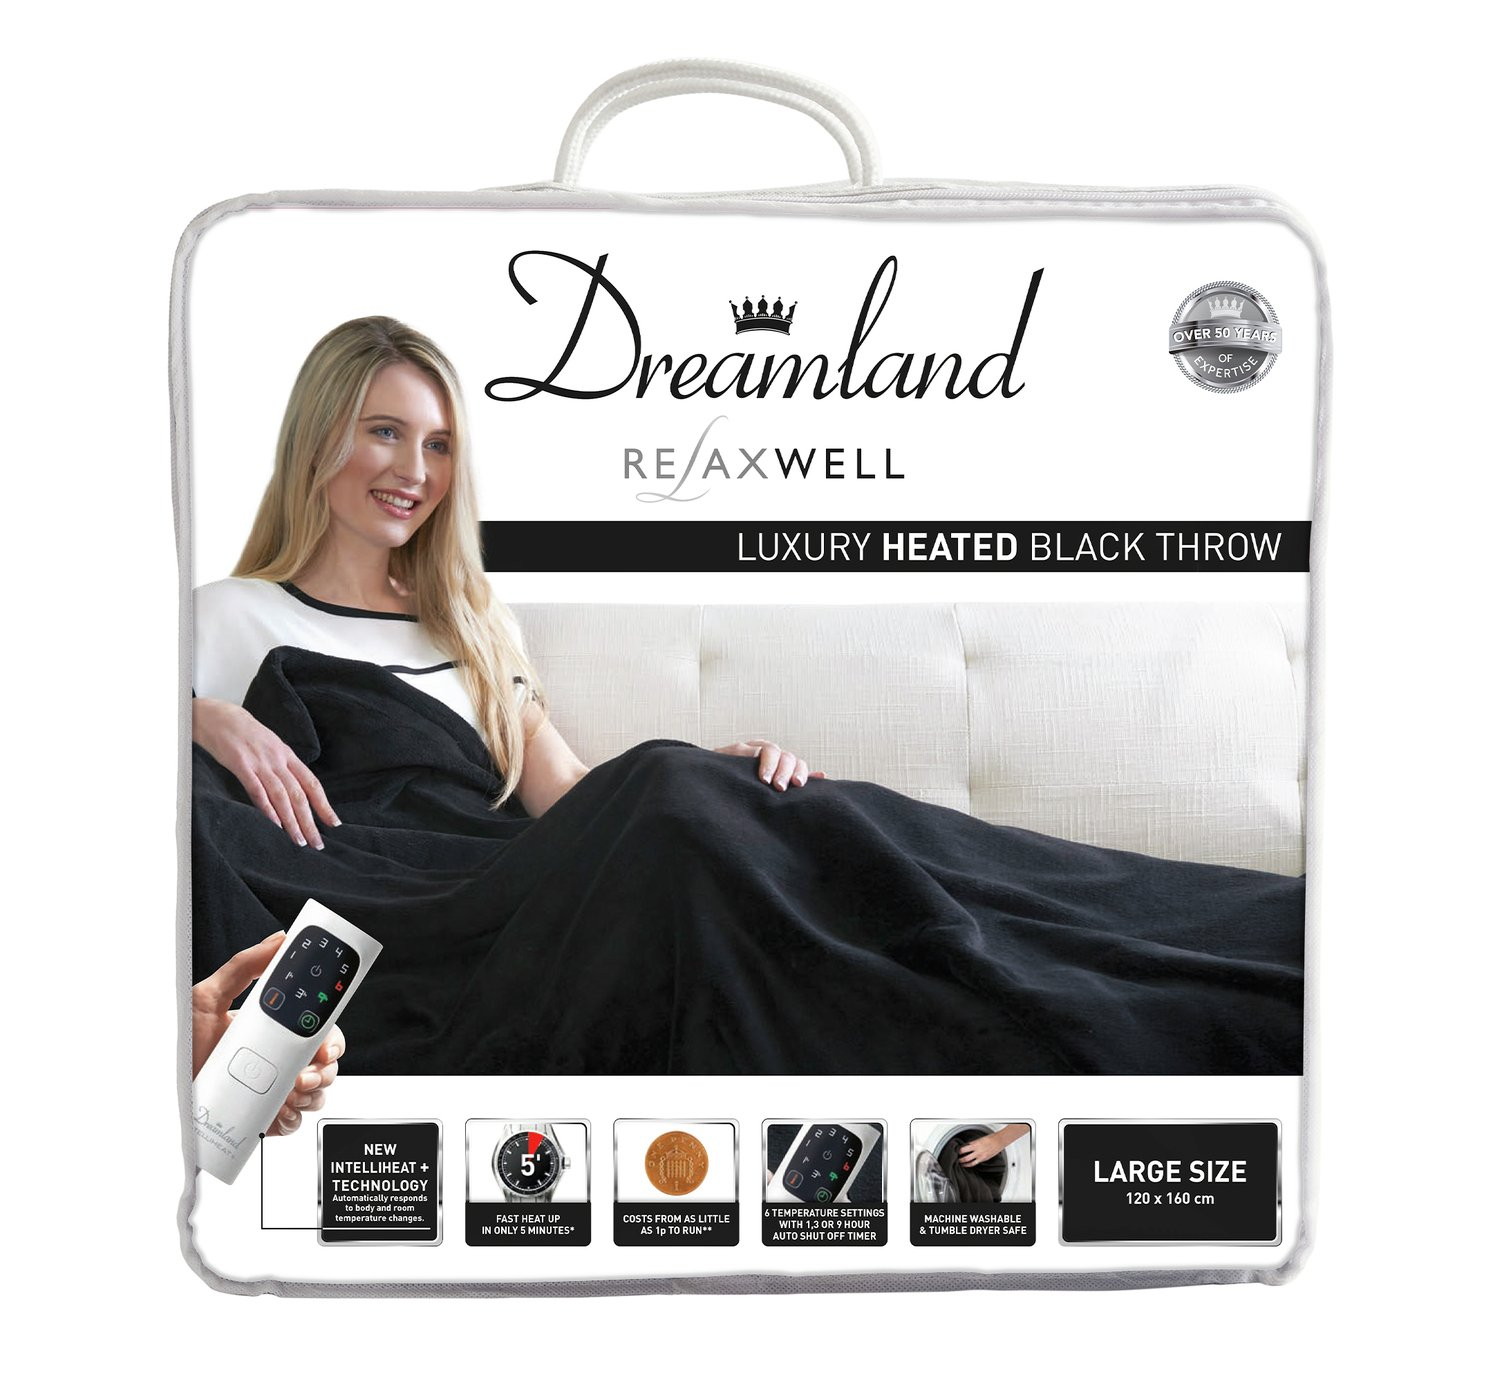 relaxwell by dreamland luxury velvety heated throw  black